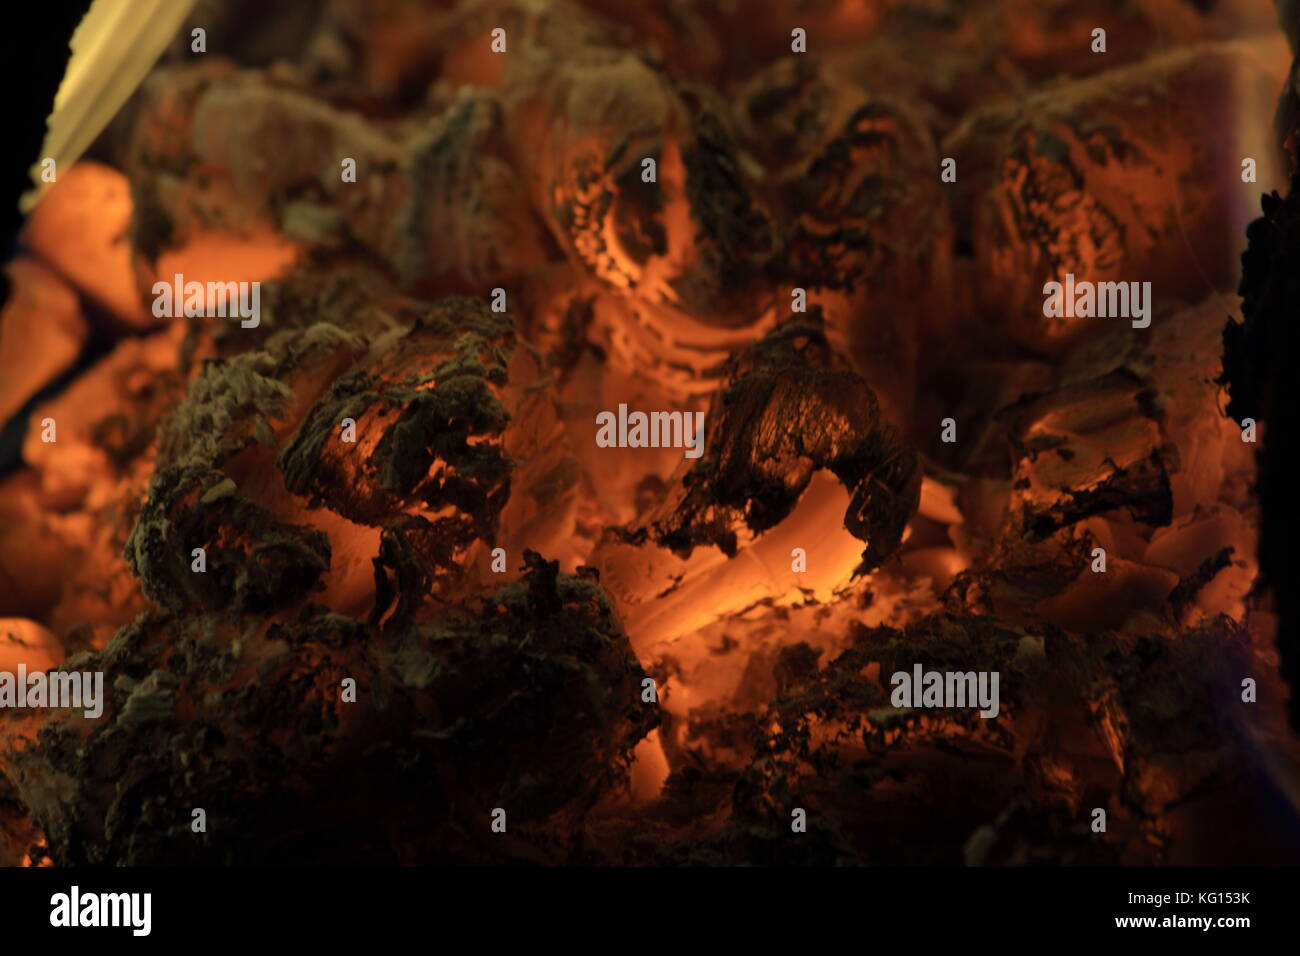 camp fire burning from coal wood in the night - Stock Image